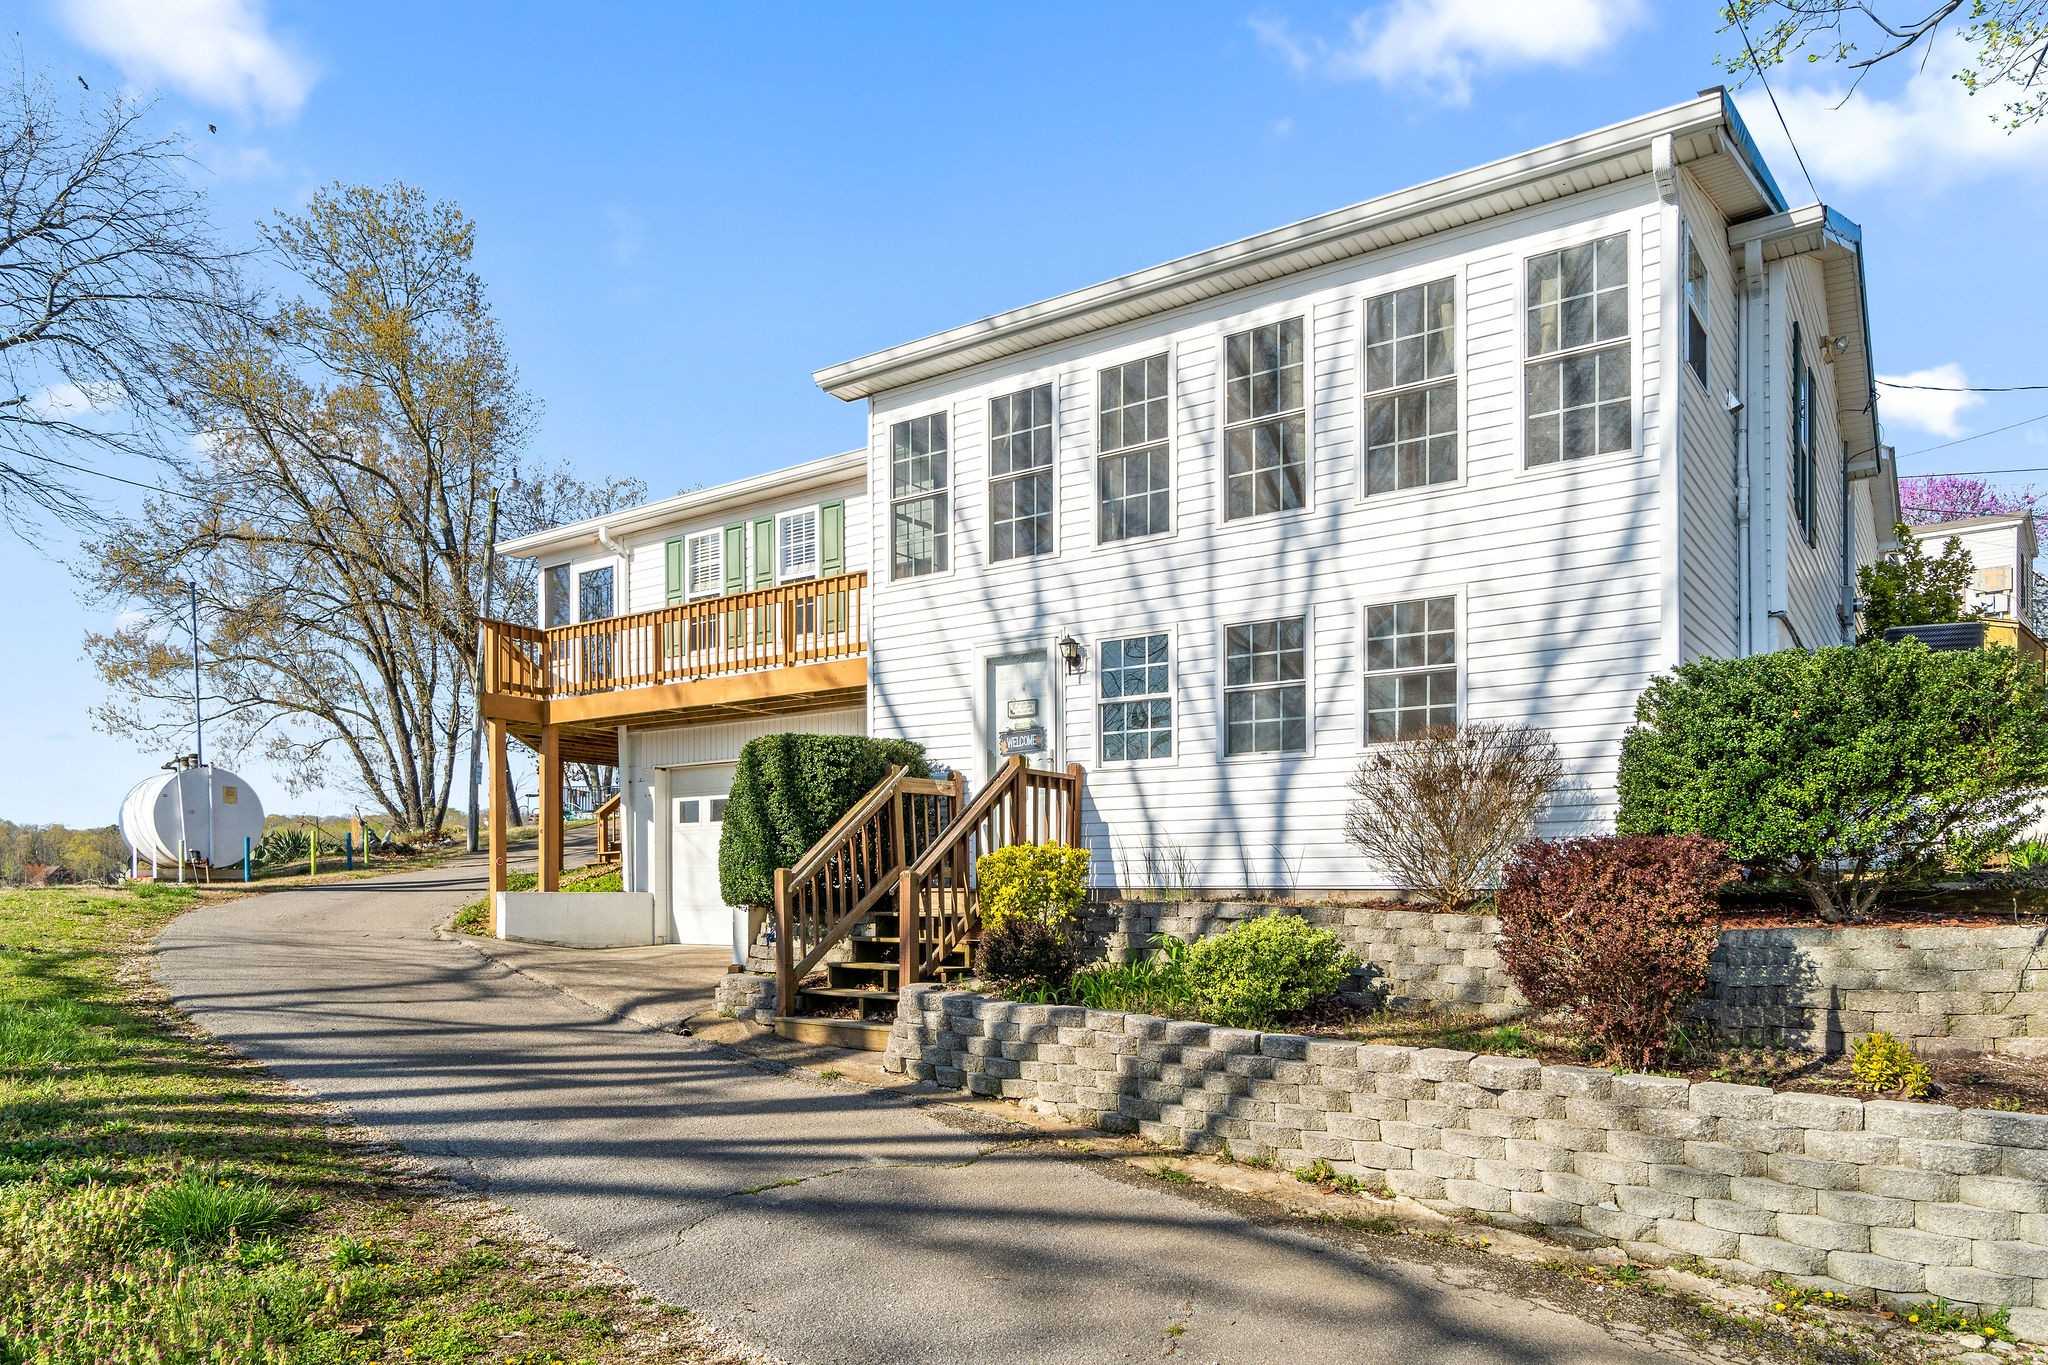 64 Beaverdam Lodge Cir Property Photo - Camden, TN real estate listing